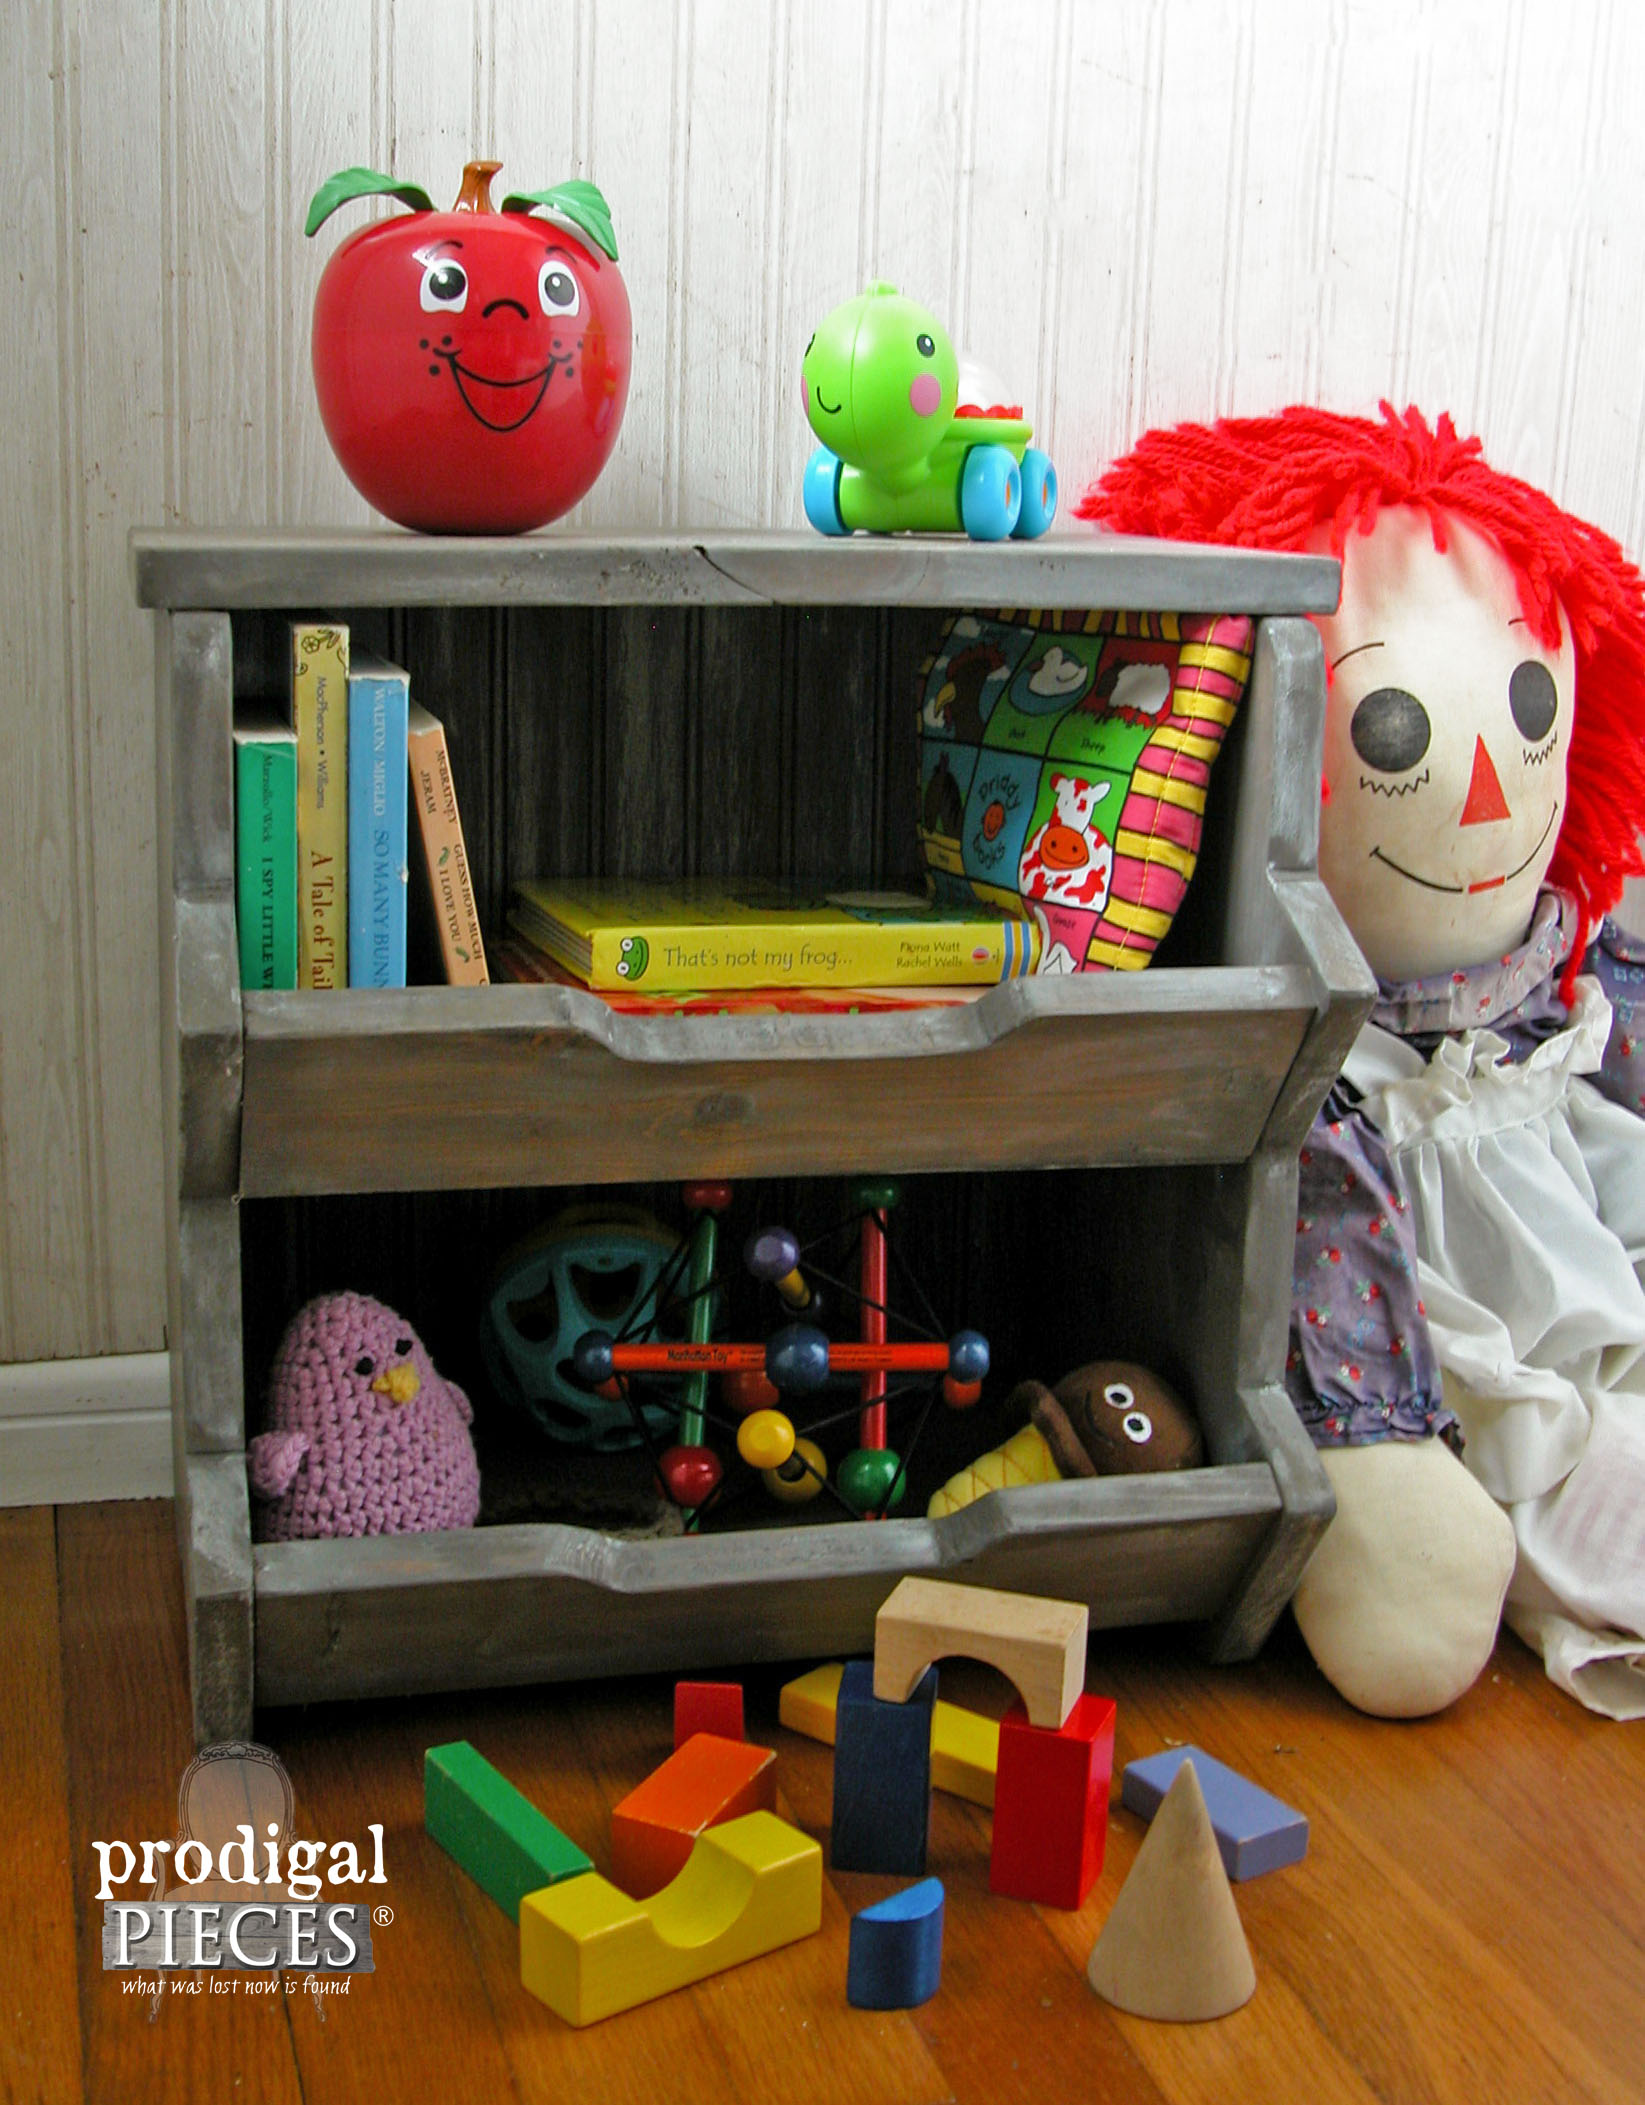 Wooden Toy Storage Bin Tutorial & Plans by Prodigal Pieces | www.prodigalpieces.com